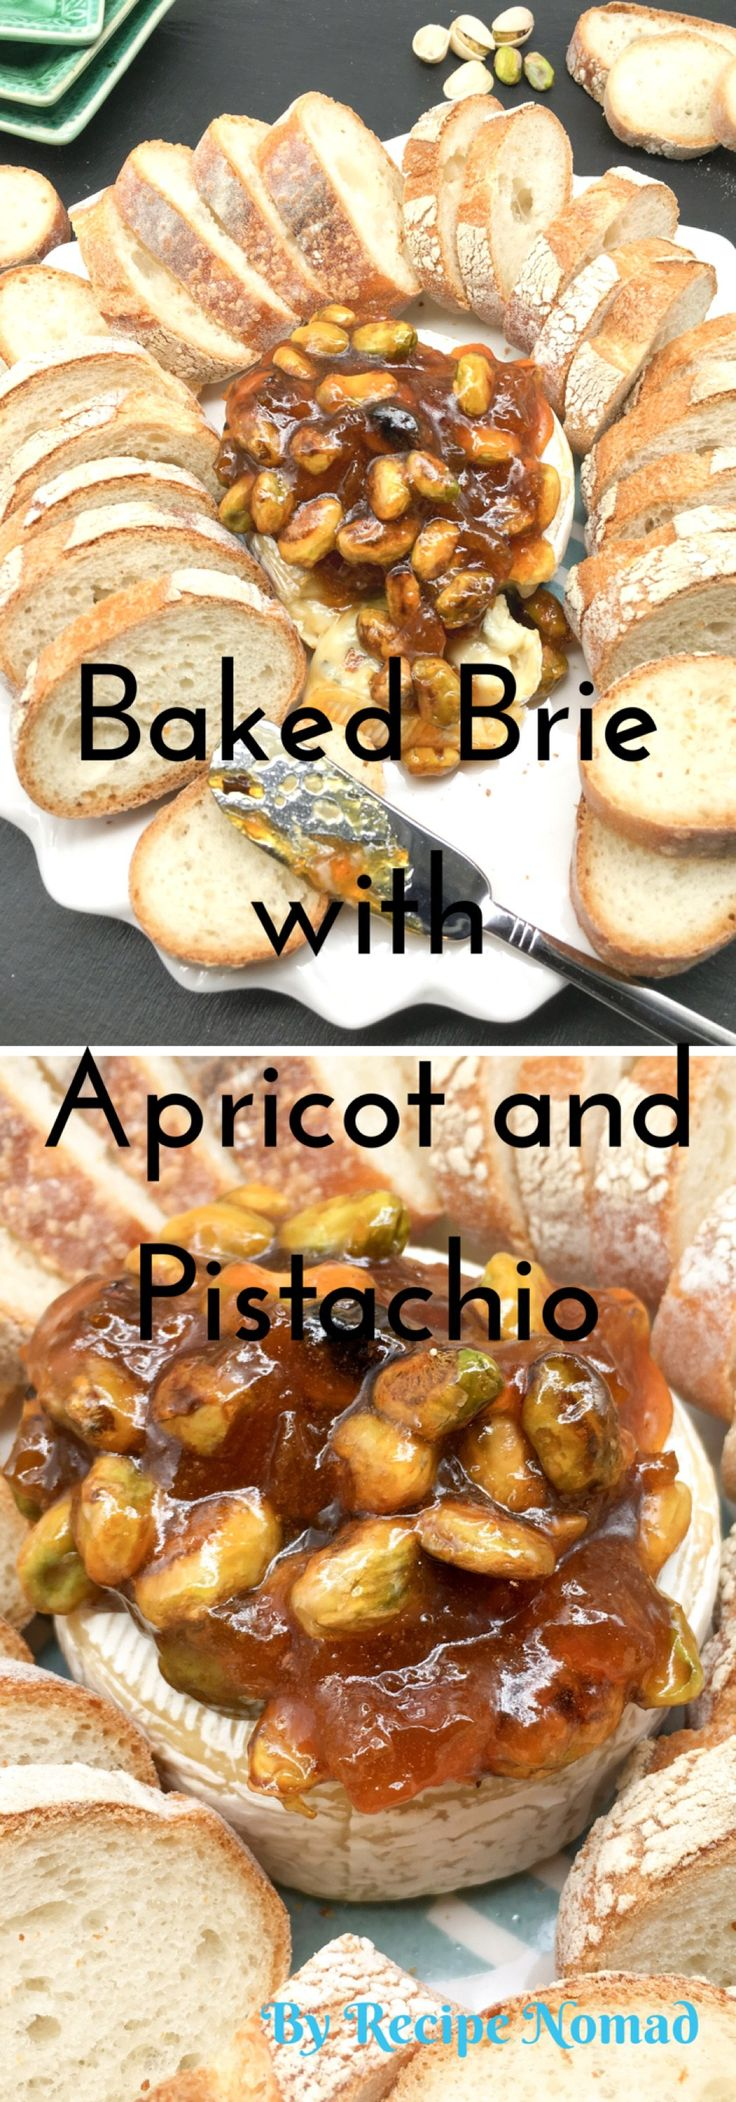 Ooey gooey and oh so good! 3 ingredients for the perfect crowd pleasing appetizer!   http://www.recipenomad.com/baked-brie-with-apricot-jam-and-pistachios/  Baked Brie with Apricot Jam and Pistachios | Recipe Nomad